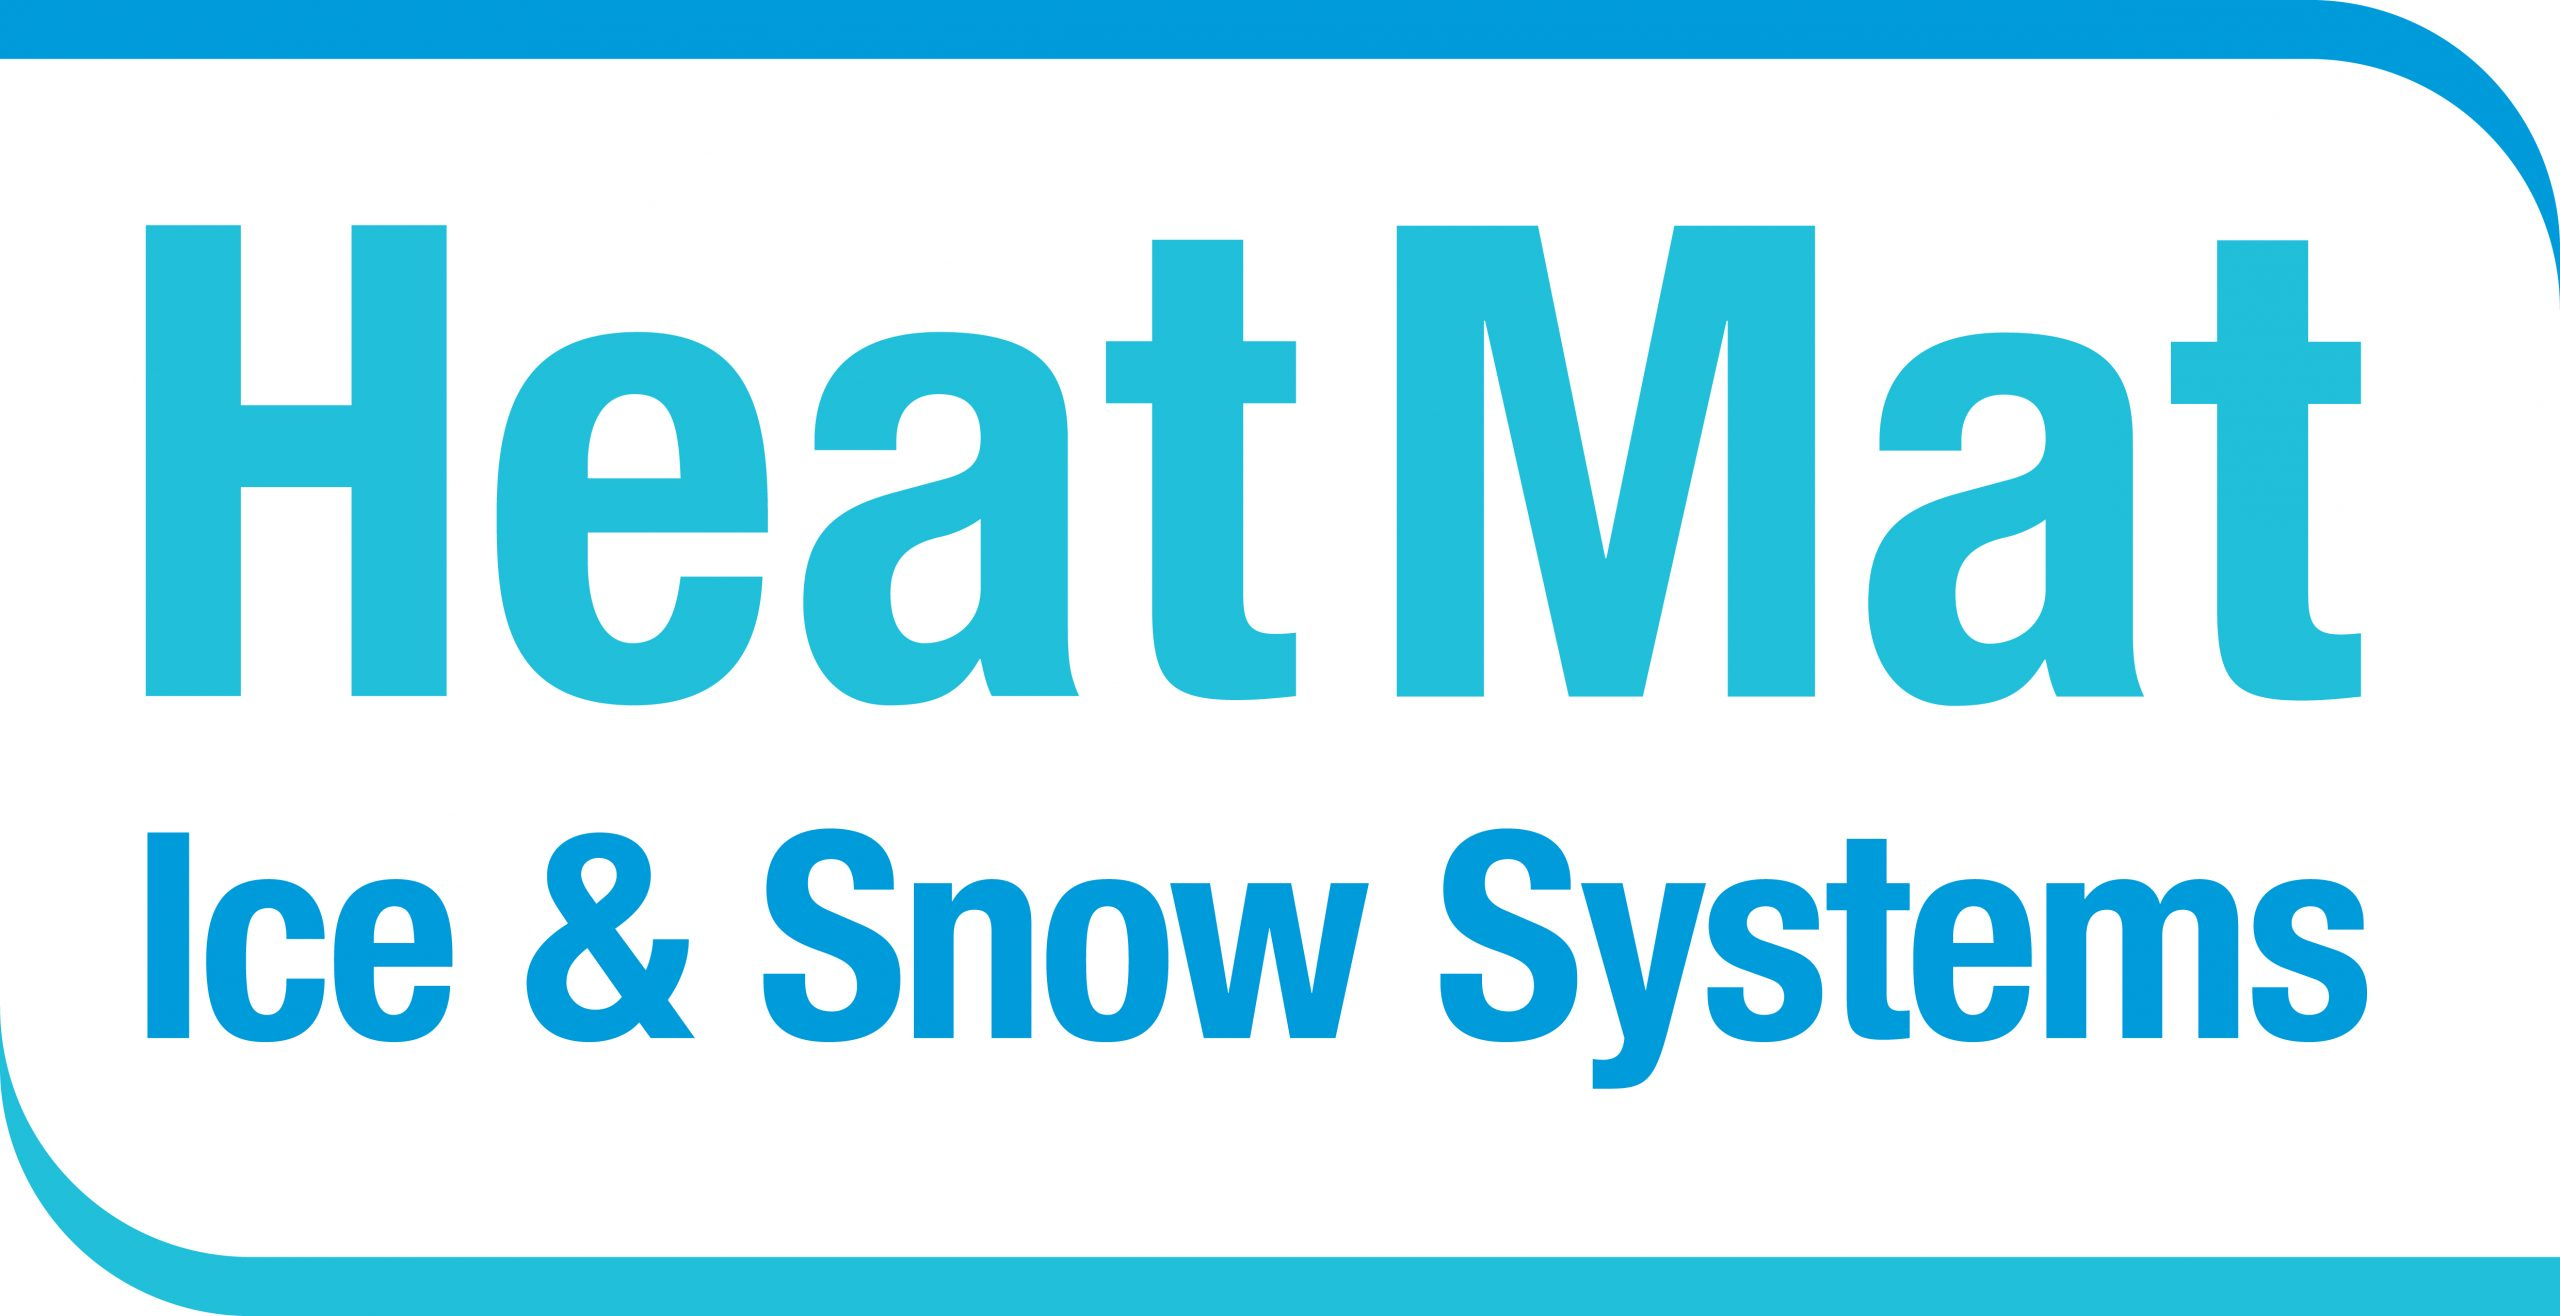 snow melting driveway and roof heating systems